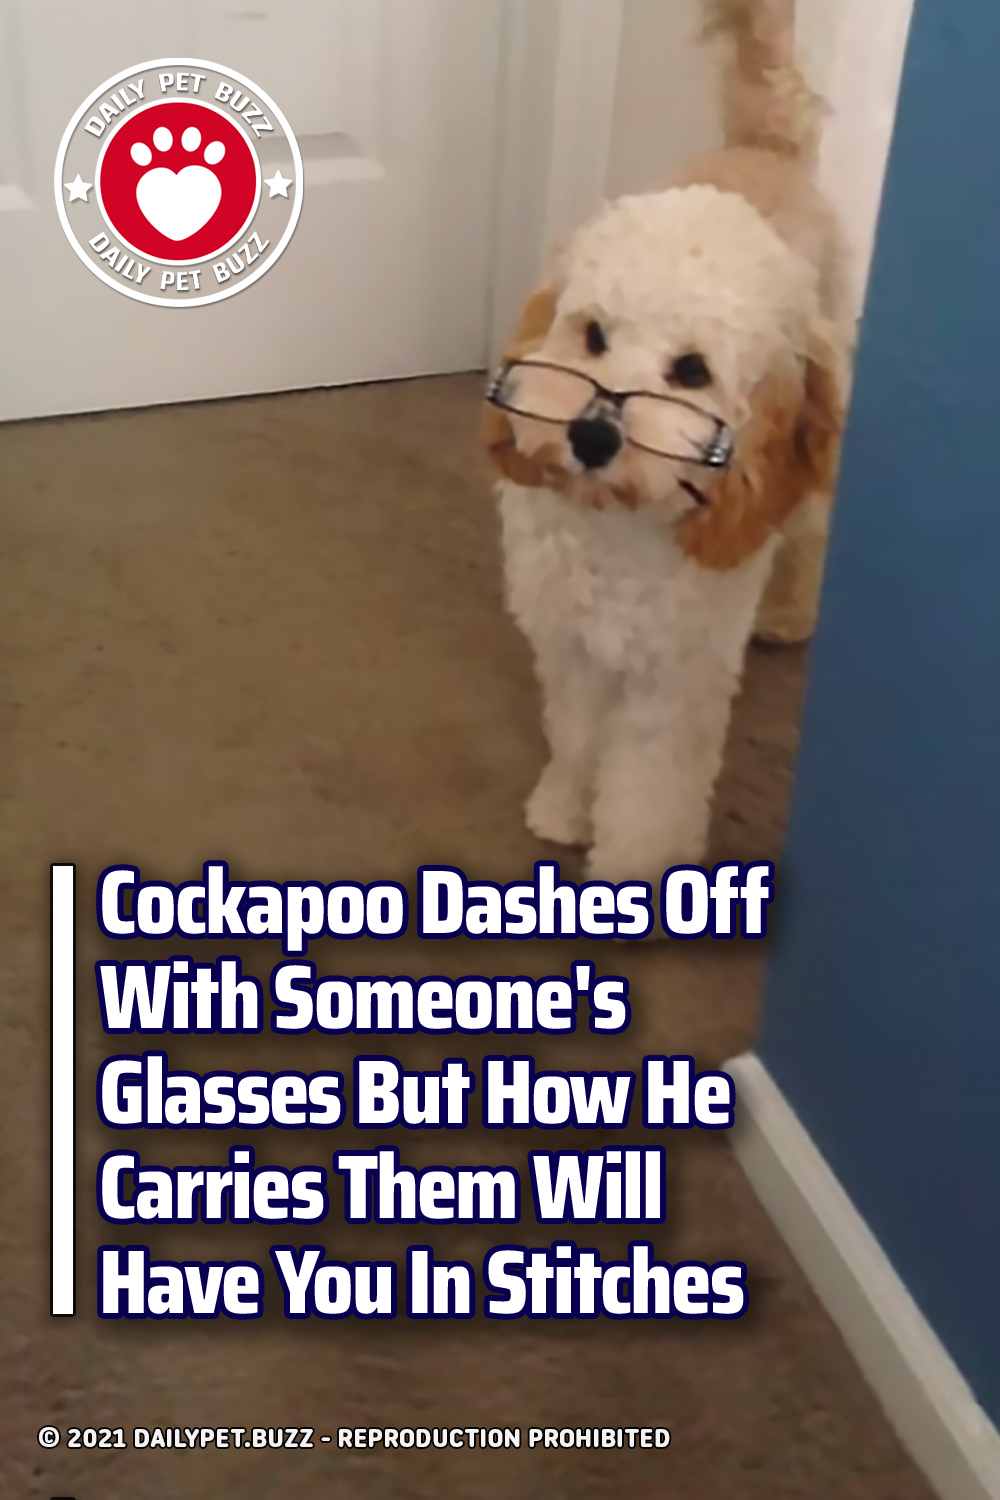 Cockapoo Dashes Off With Someone\'s Glasses But How He Carries Them Will Have You In Stitches